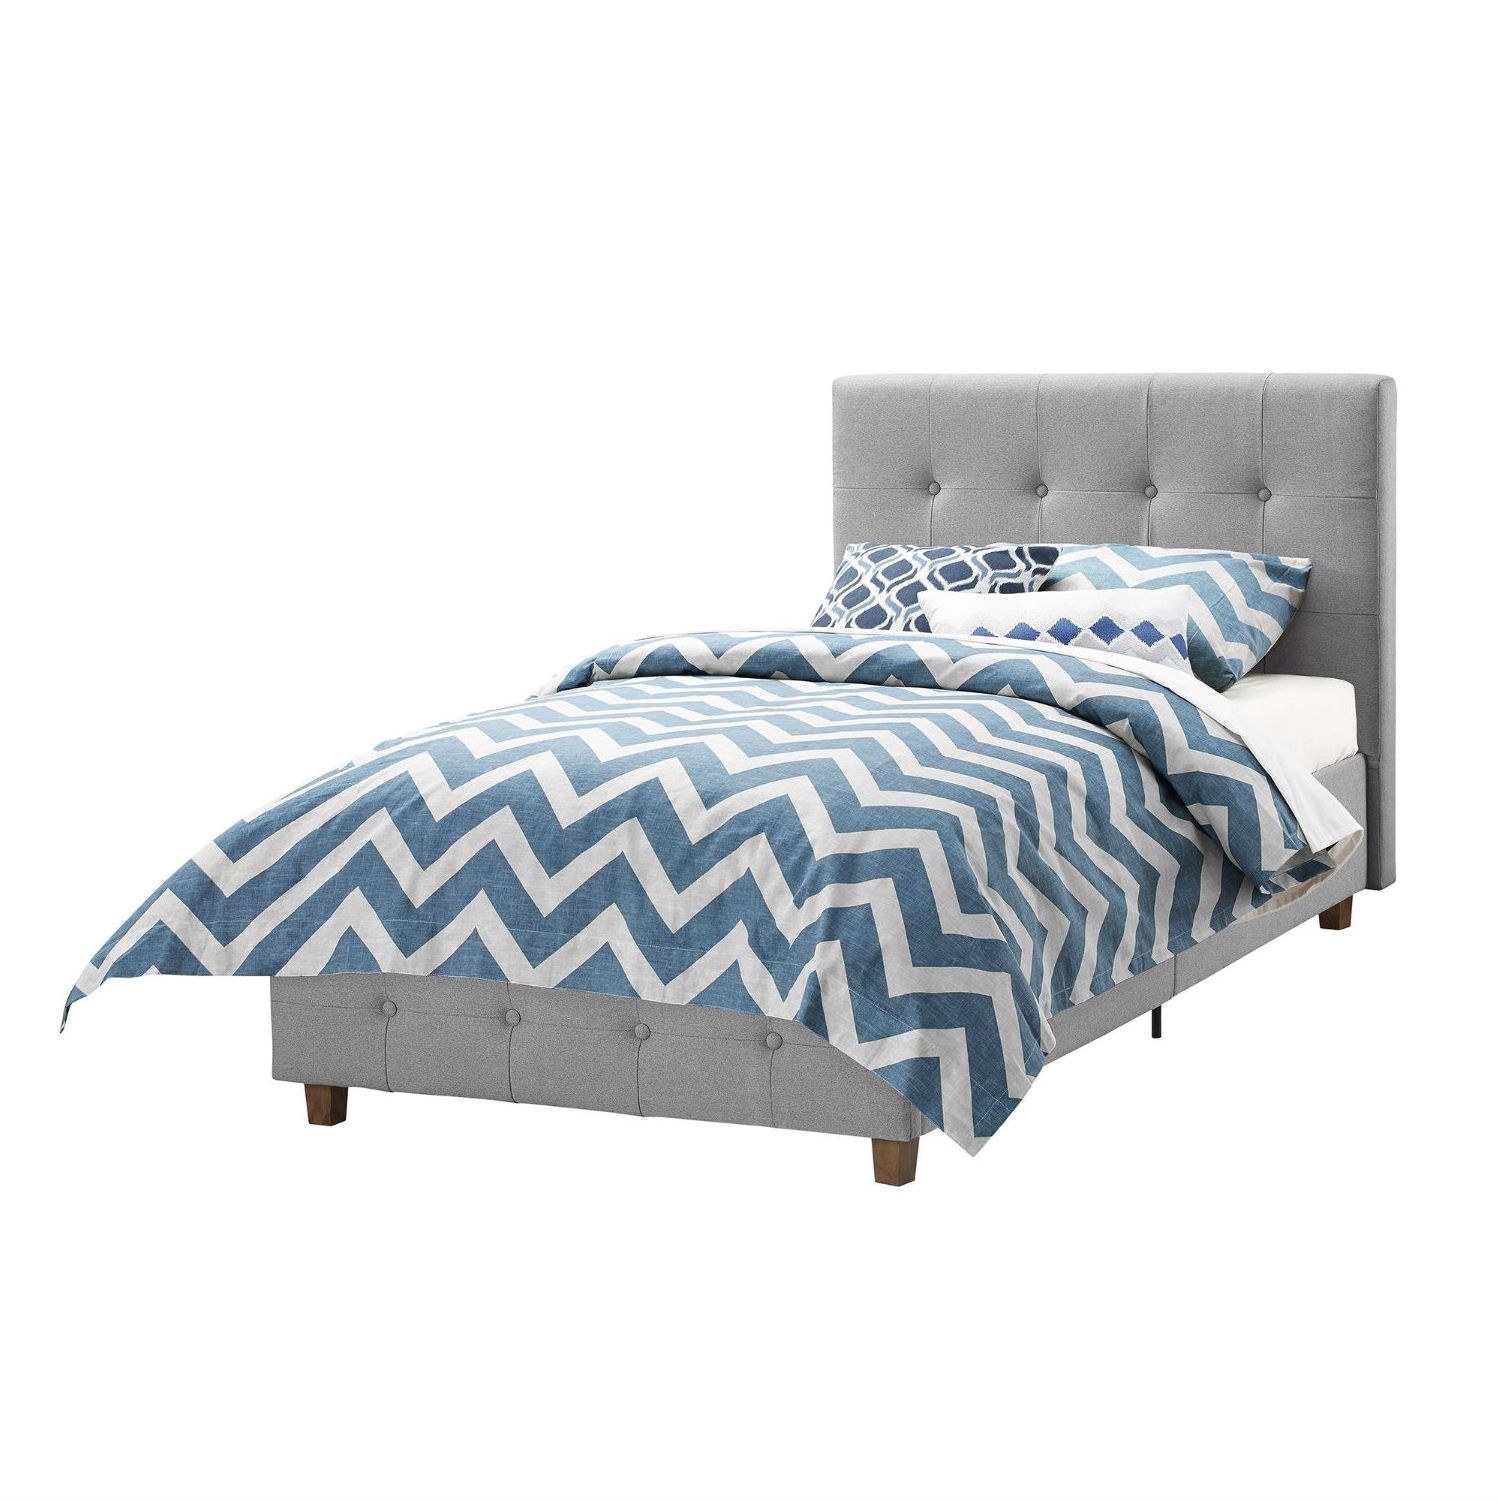 Twin Size Grey Upholstered Platform Bed Frame With On Tufted Headboard Fastfurnishings